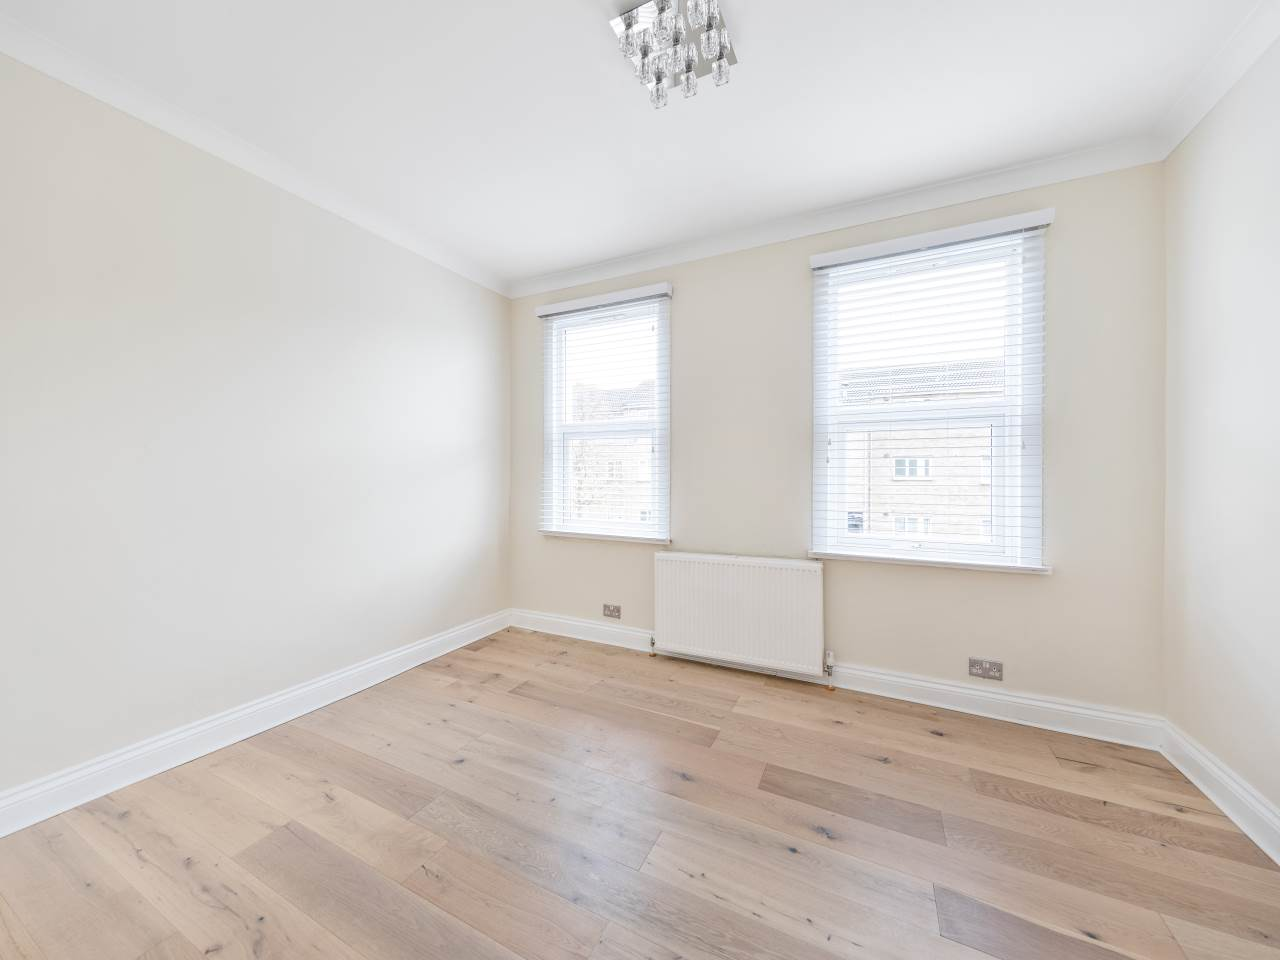 3 bed house for sale in Exning Road , Canning Town  7